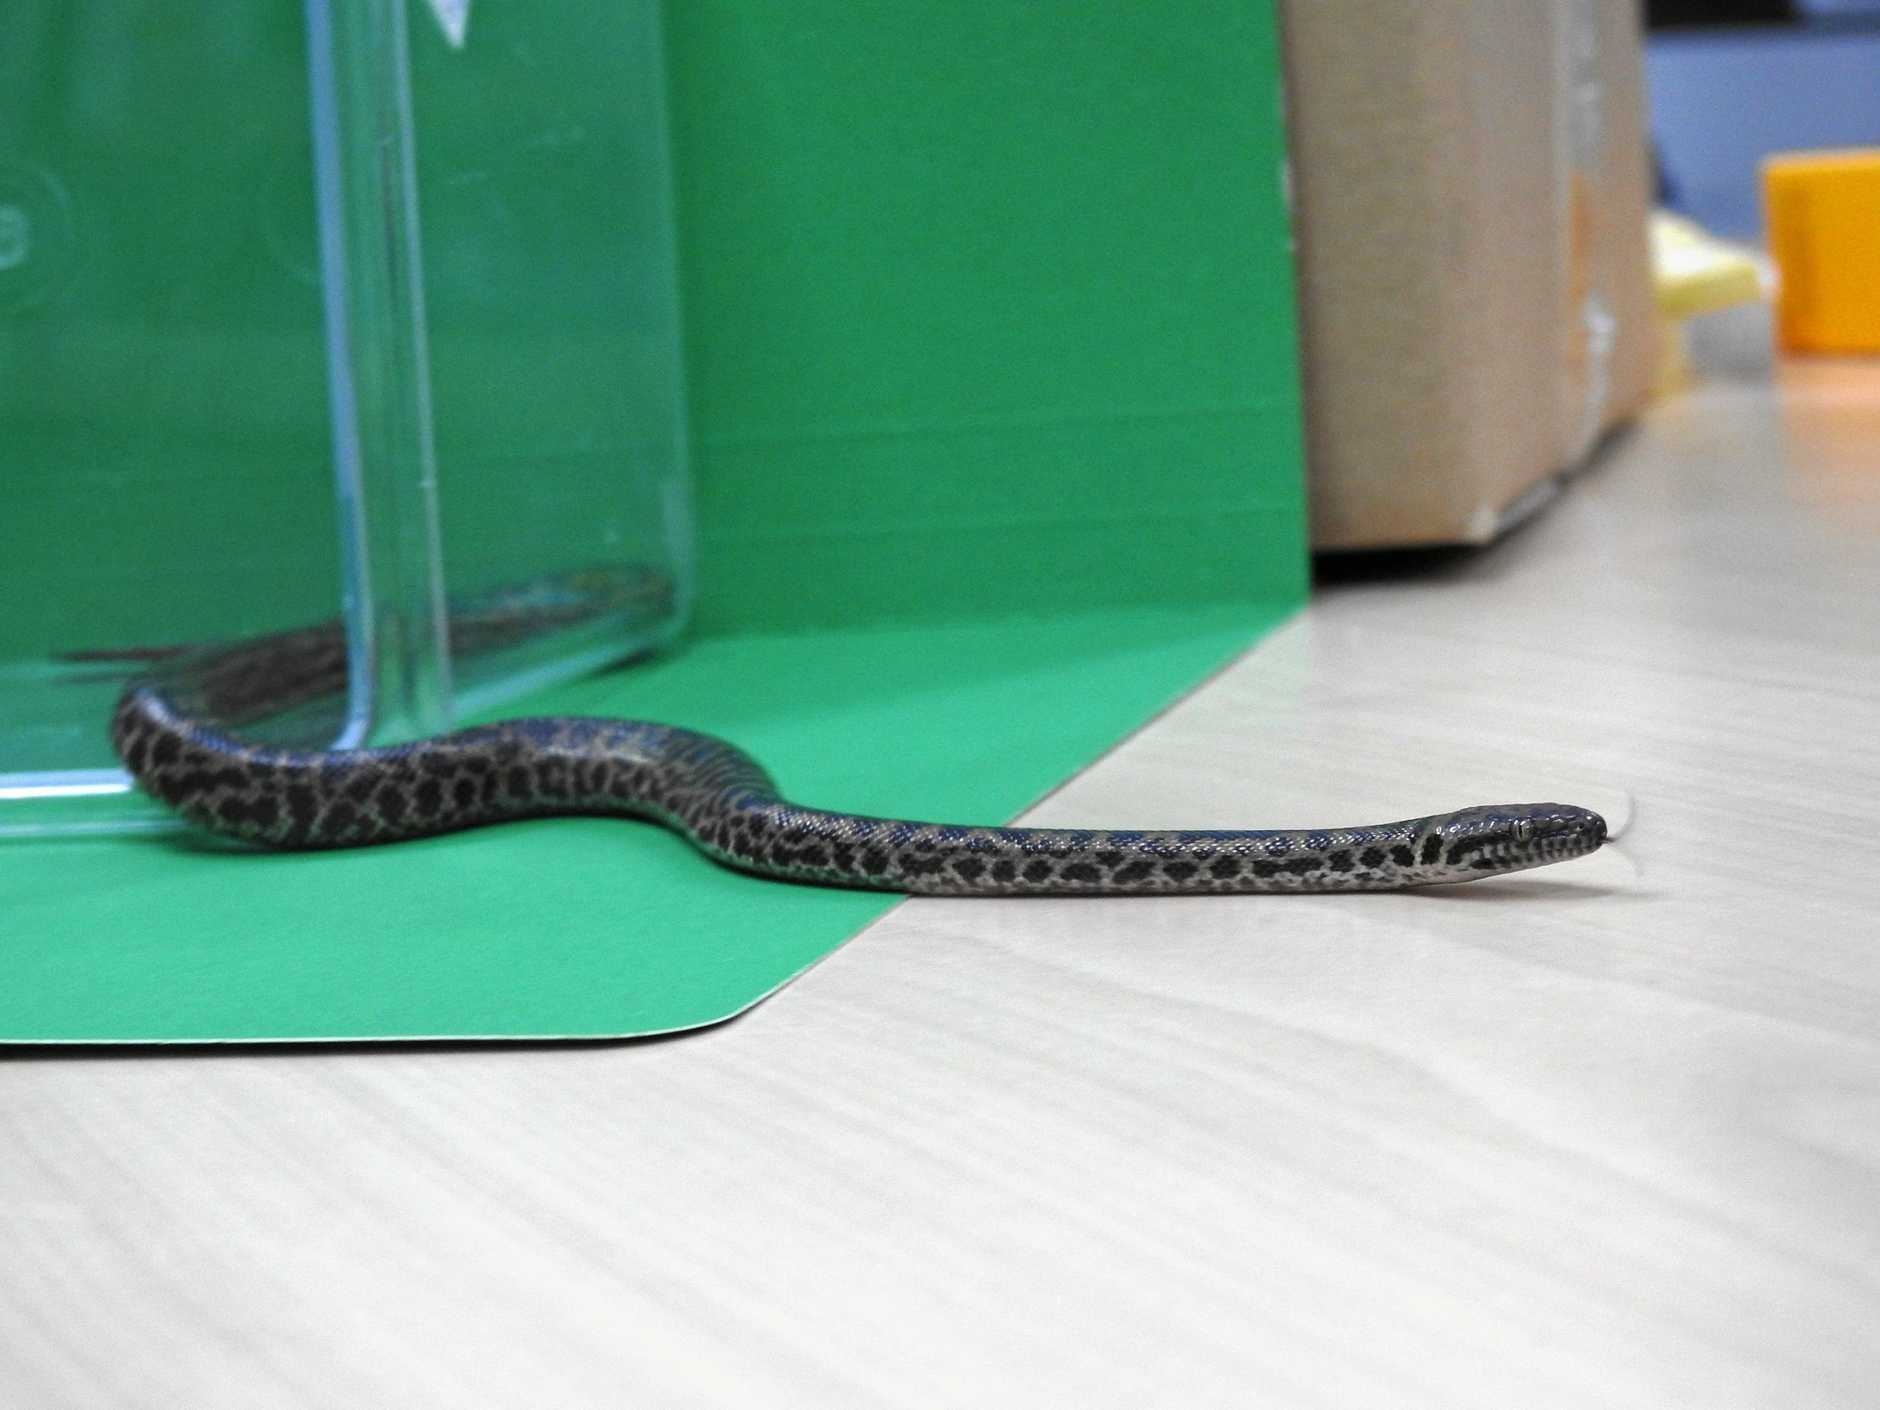 The spotted python a man tried to bring into court.